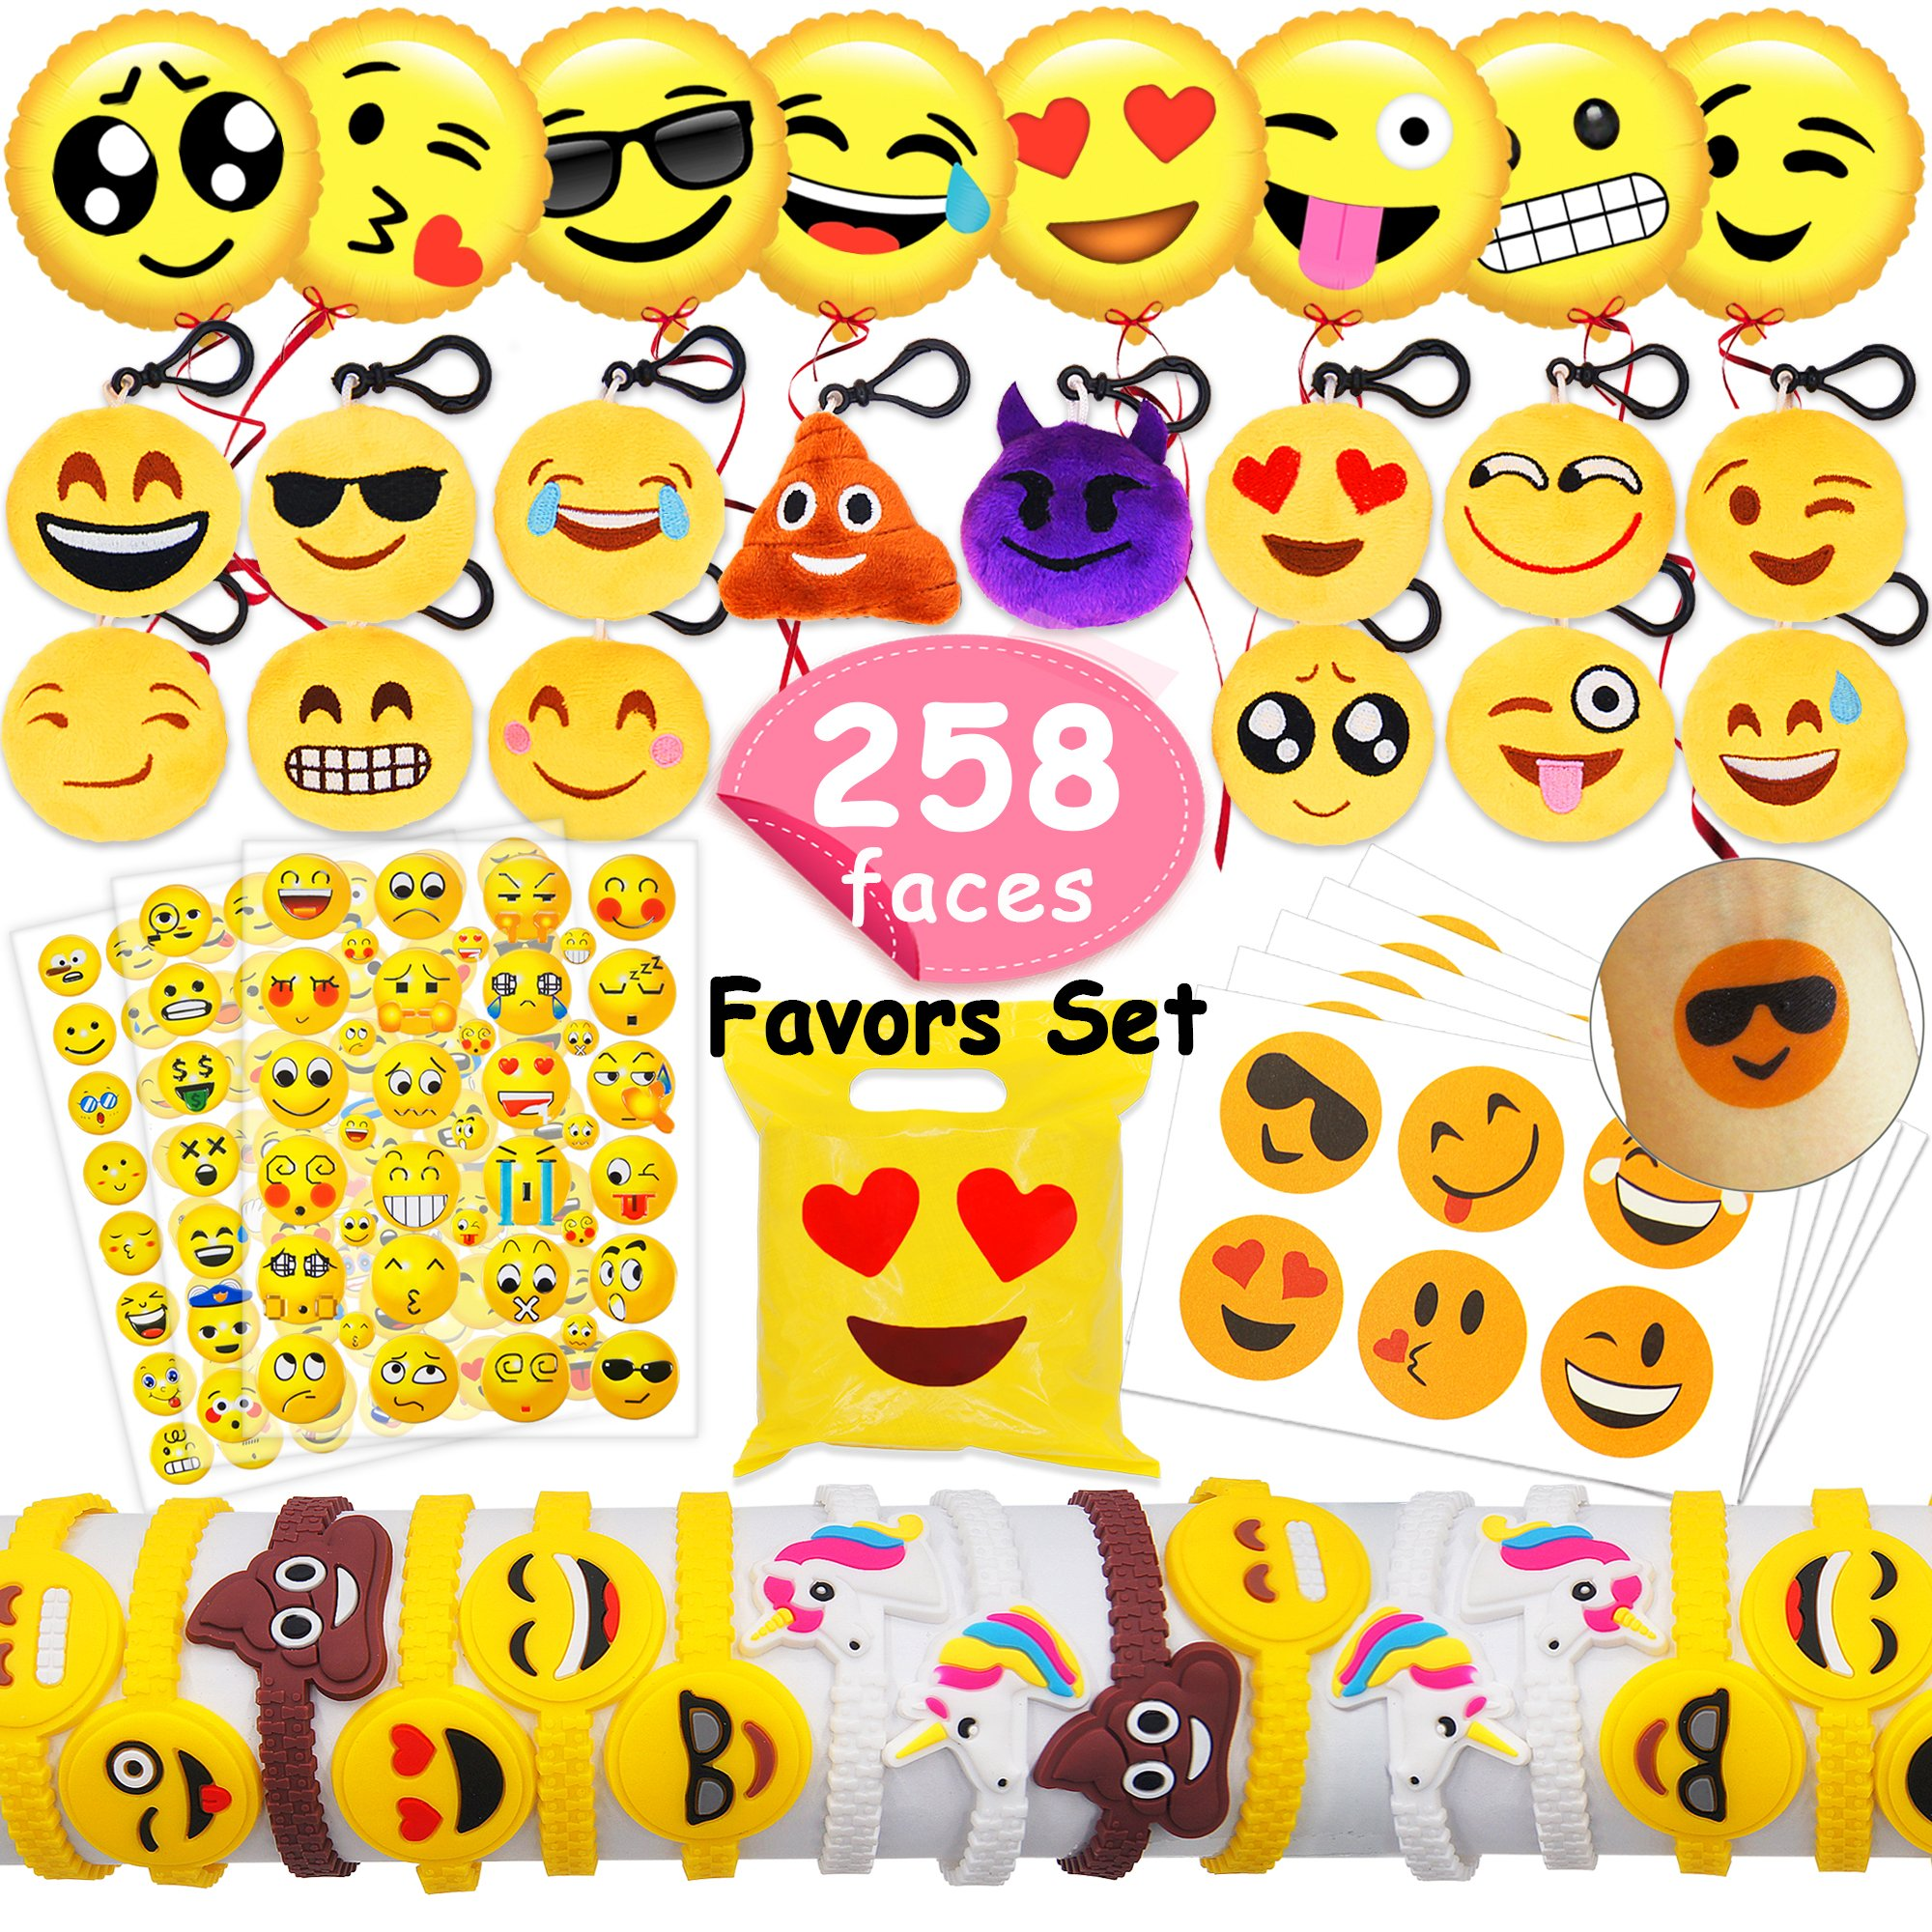 MelonBoat Emoji Party Favors Supplies 258 Faces Jumbo Pack, Backpack Keychain Plush, Balloons, Stickers, Rubber Wristbands Bracelets, Favor Goodie Bags, Bulk Set Stuff Toys Gifts Kids Children